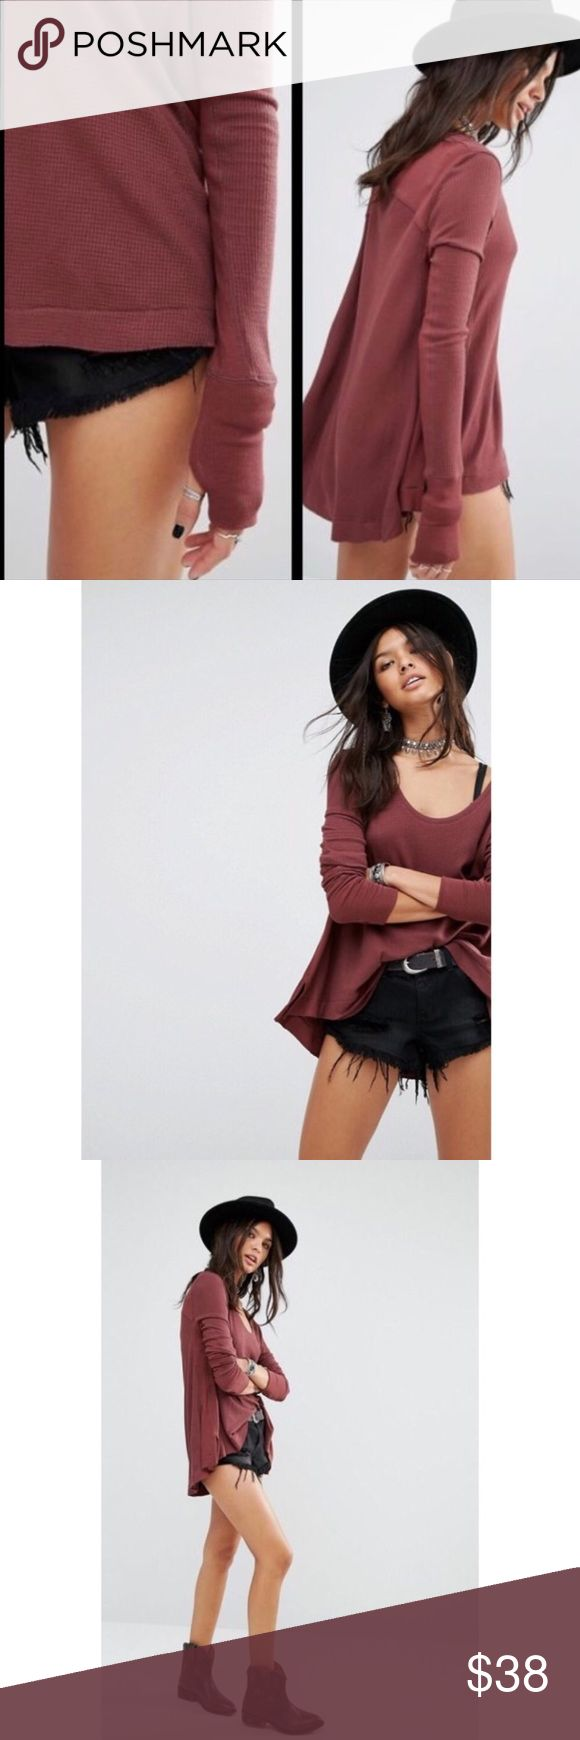 NWT Free People Malibu Thermal Color Fig/Brown. Size L. More details coming soon. Free People Tops Tees - Long Sleeve